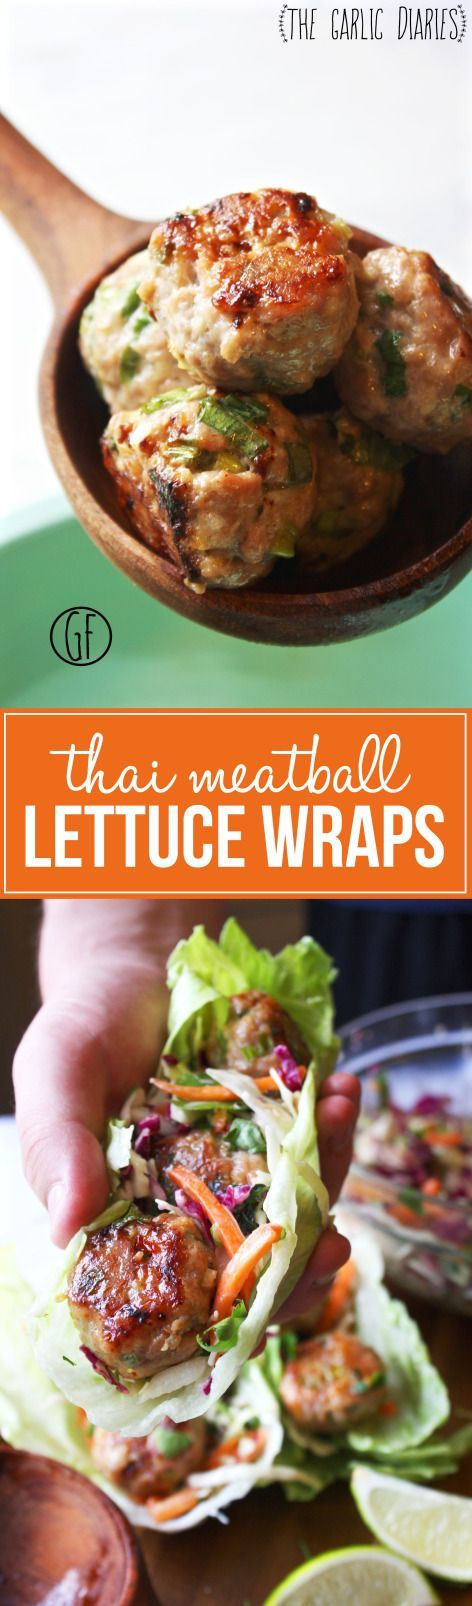 Thai Meatball Lettuce Wraps - Be sure to use gluten free sauces.